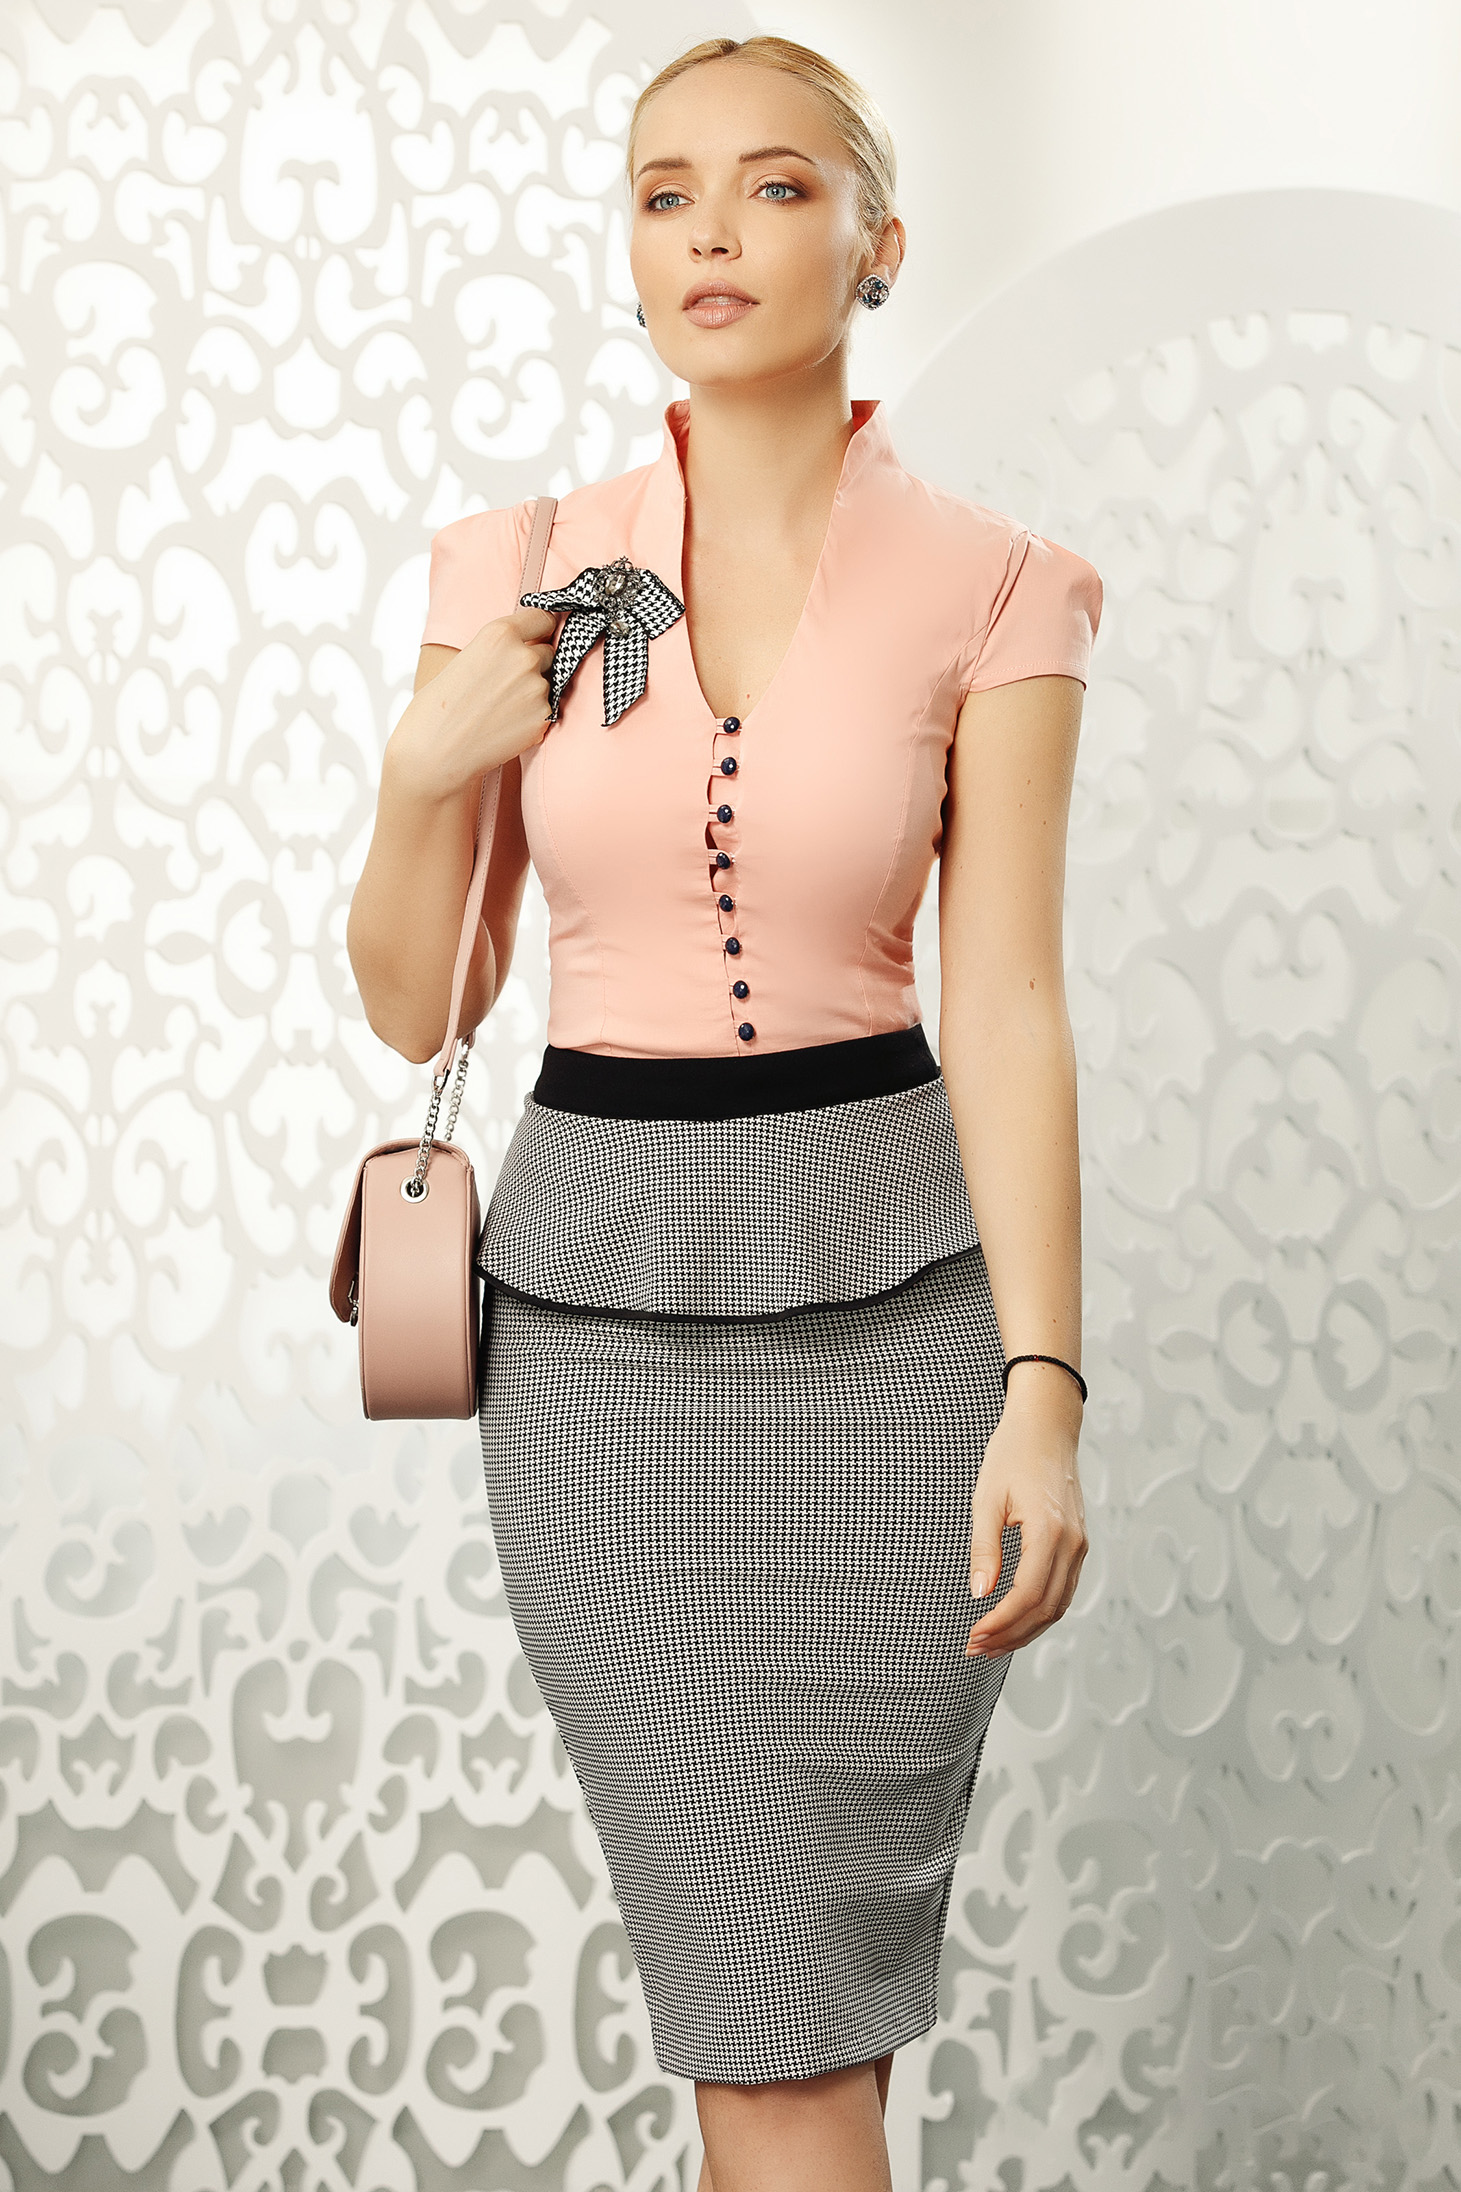 Fofy peach elegant women`s shirt tented cotton short sleeve accessorized with breastpin